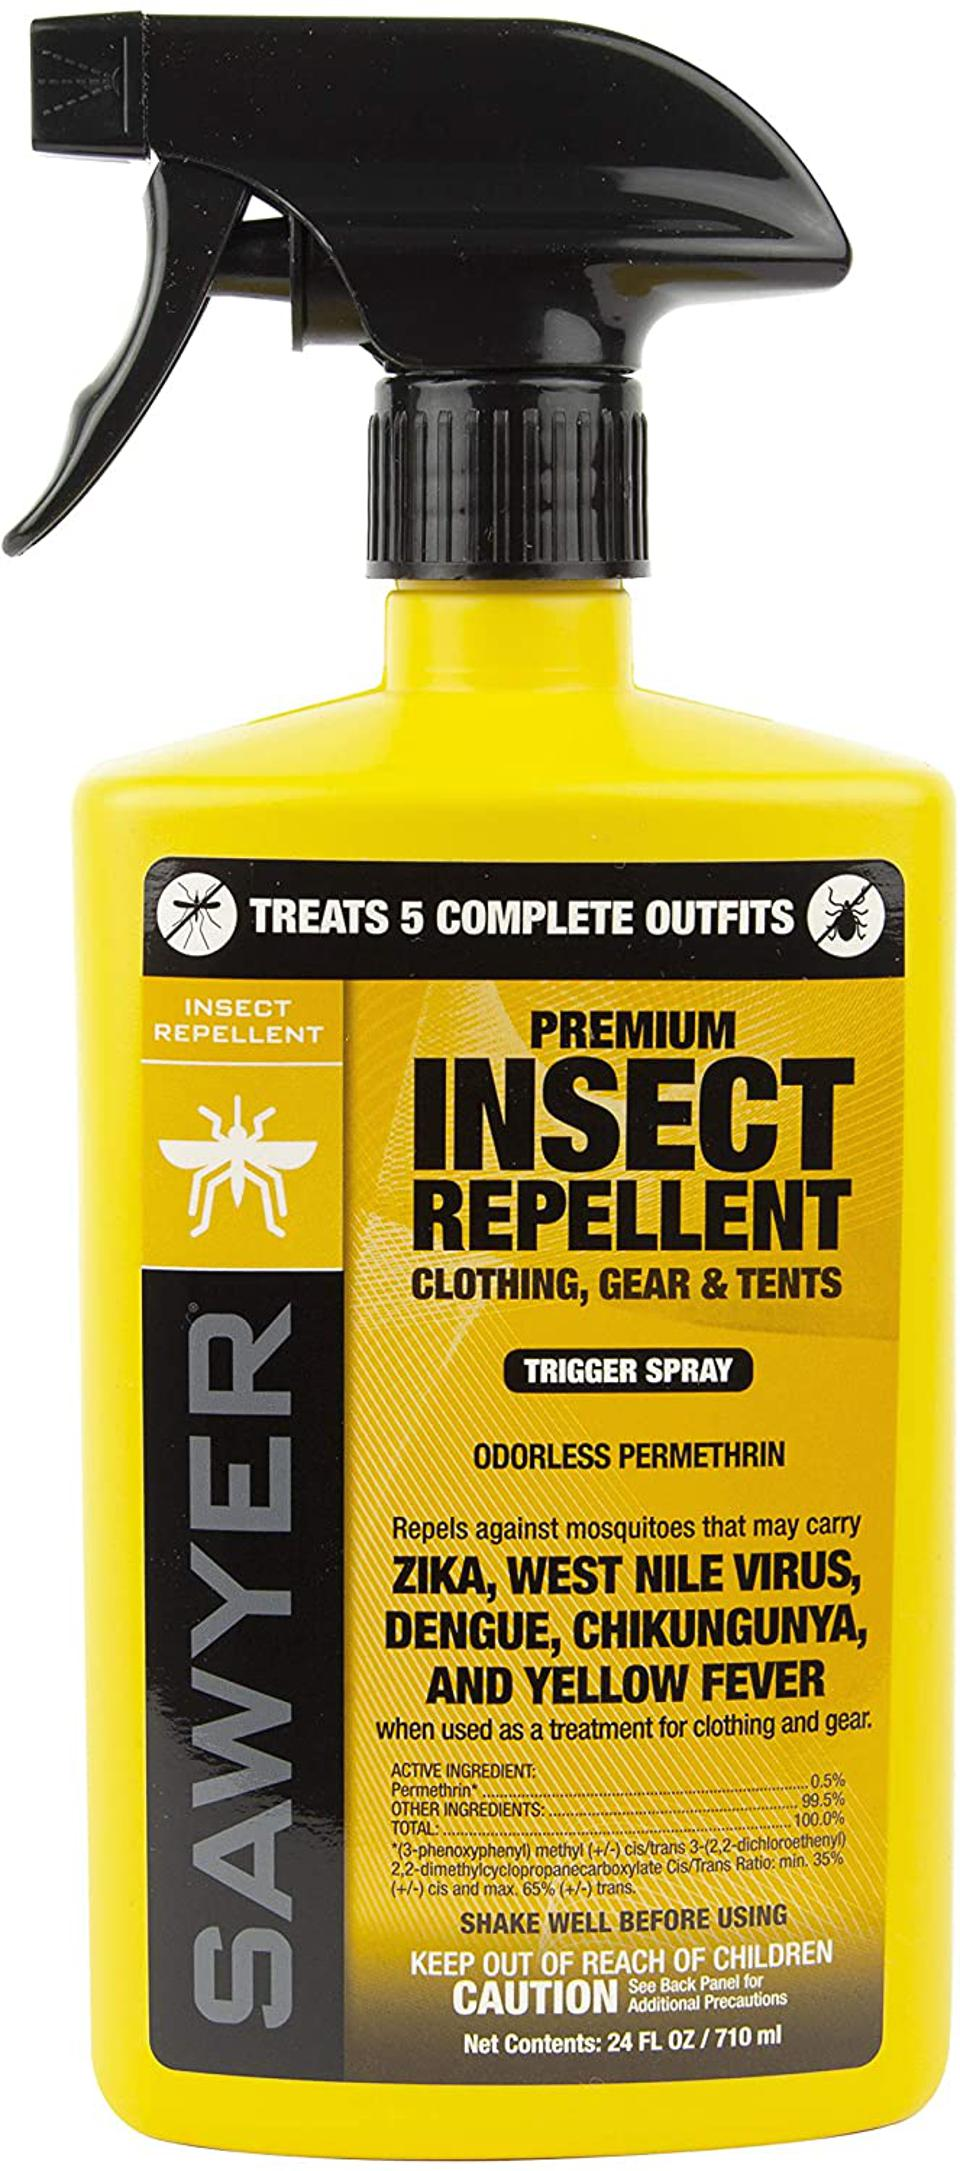 Sawyer Products Premium Permethrin Insect Repellent